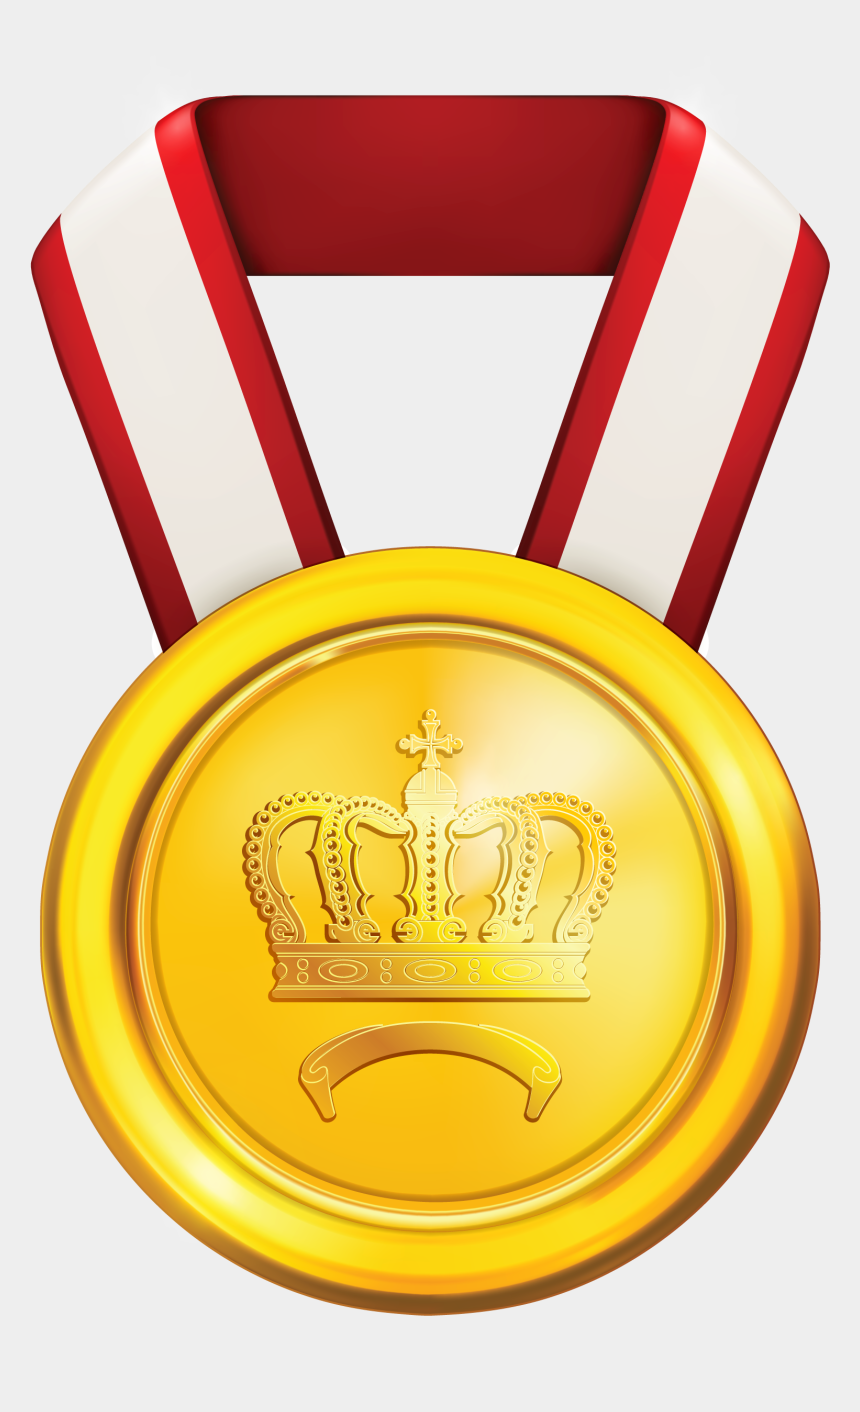 prize clipart, Cartoons - Gold Medal Png - Medal Of Honor Clipart